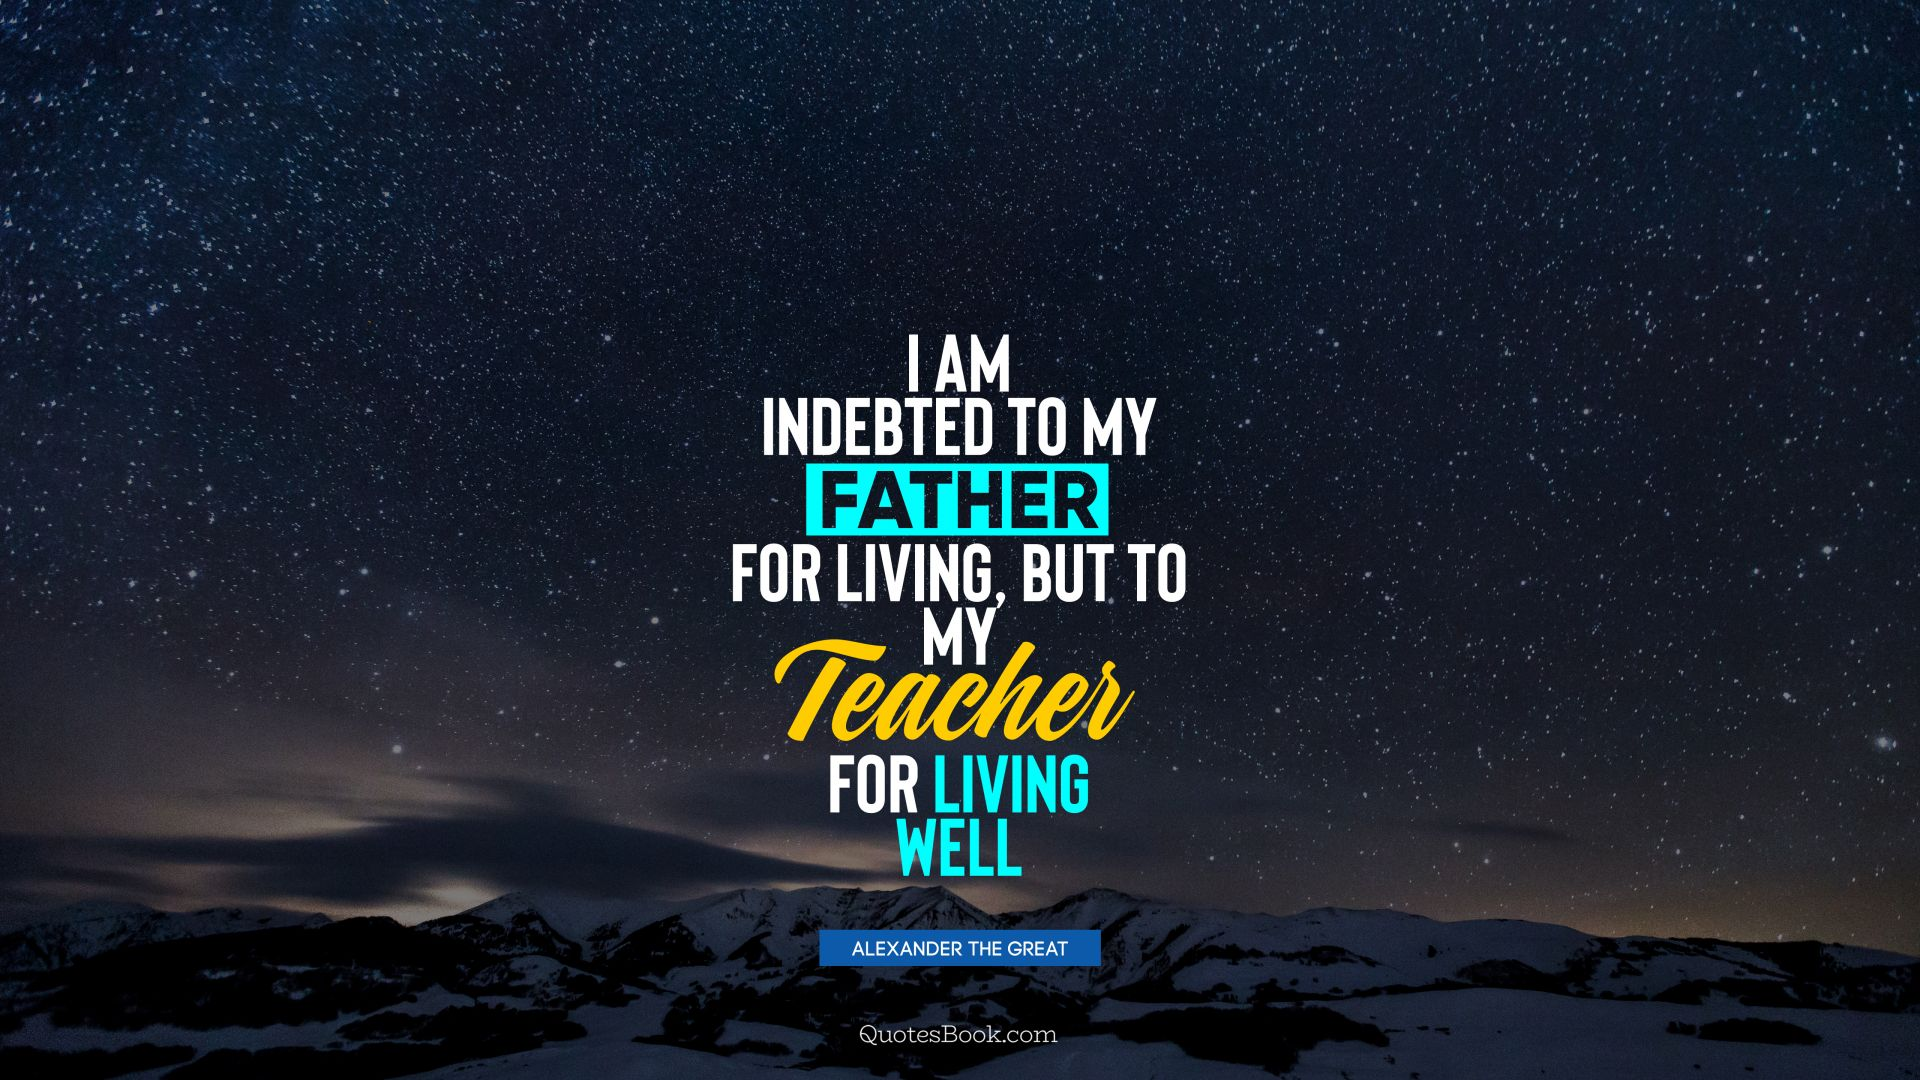 I am indebted to my father for living, but to my teacher for living well. - Quote by Alexander the Great